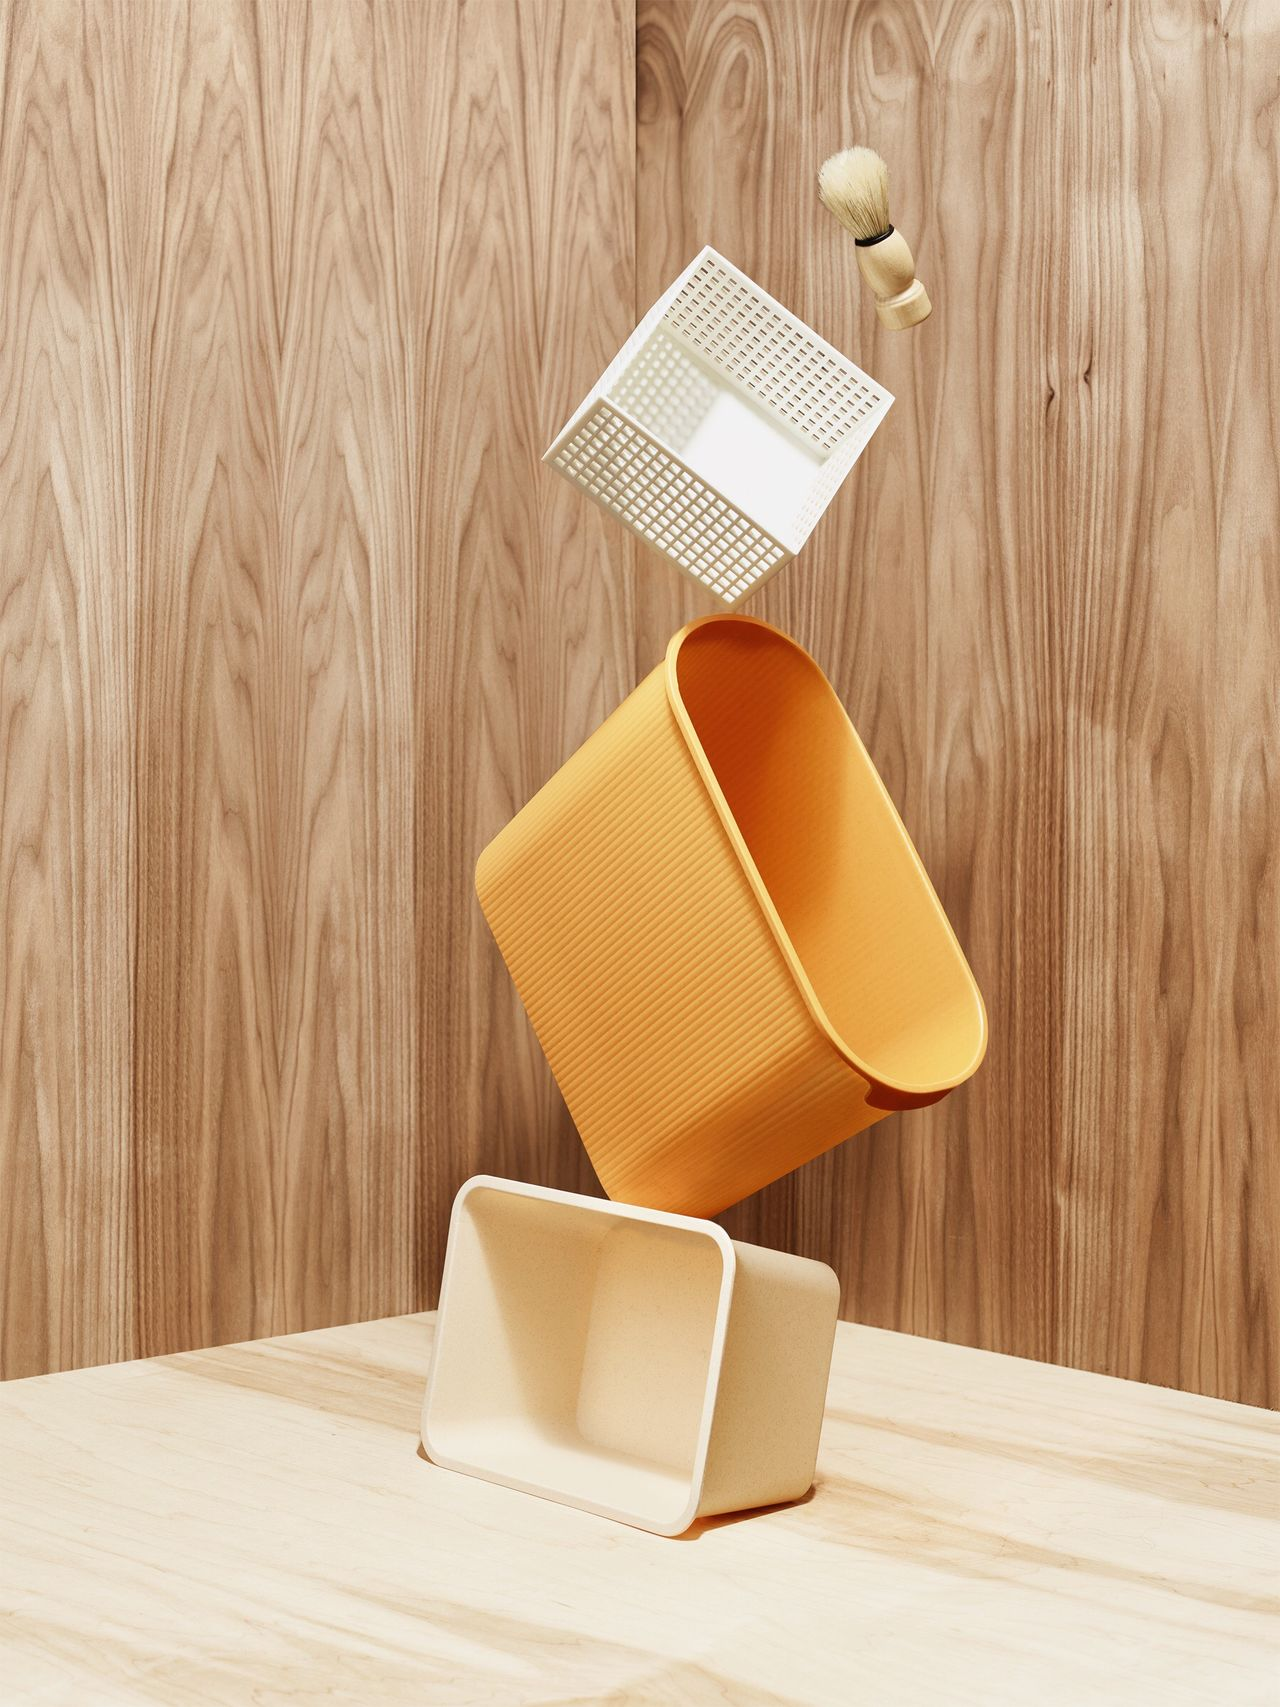 Wood - Material Table Desk Office Indoors  Wood Paneling No People Daiso Studio Shot Wood Grain Shapes And Forms Fresh on Market 2017 Monochromatic Trashcan Shaving Brush Balancing Act Balance Close-up Day